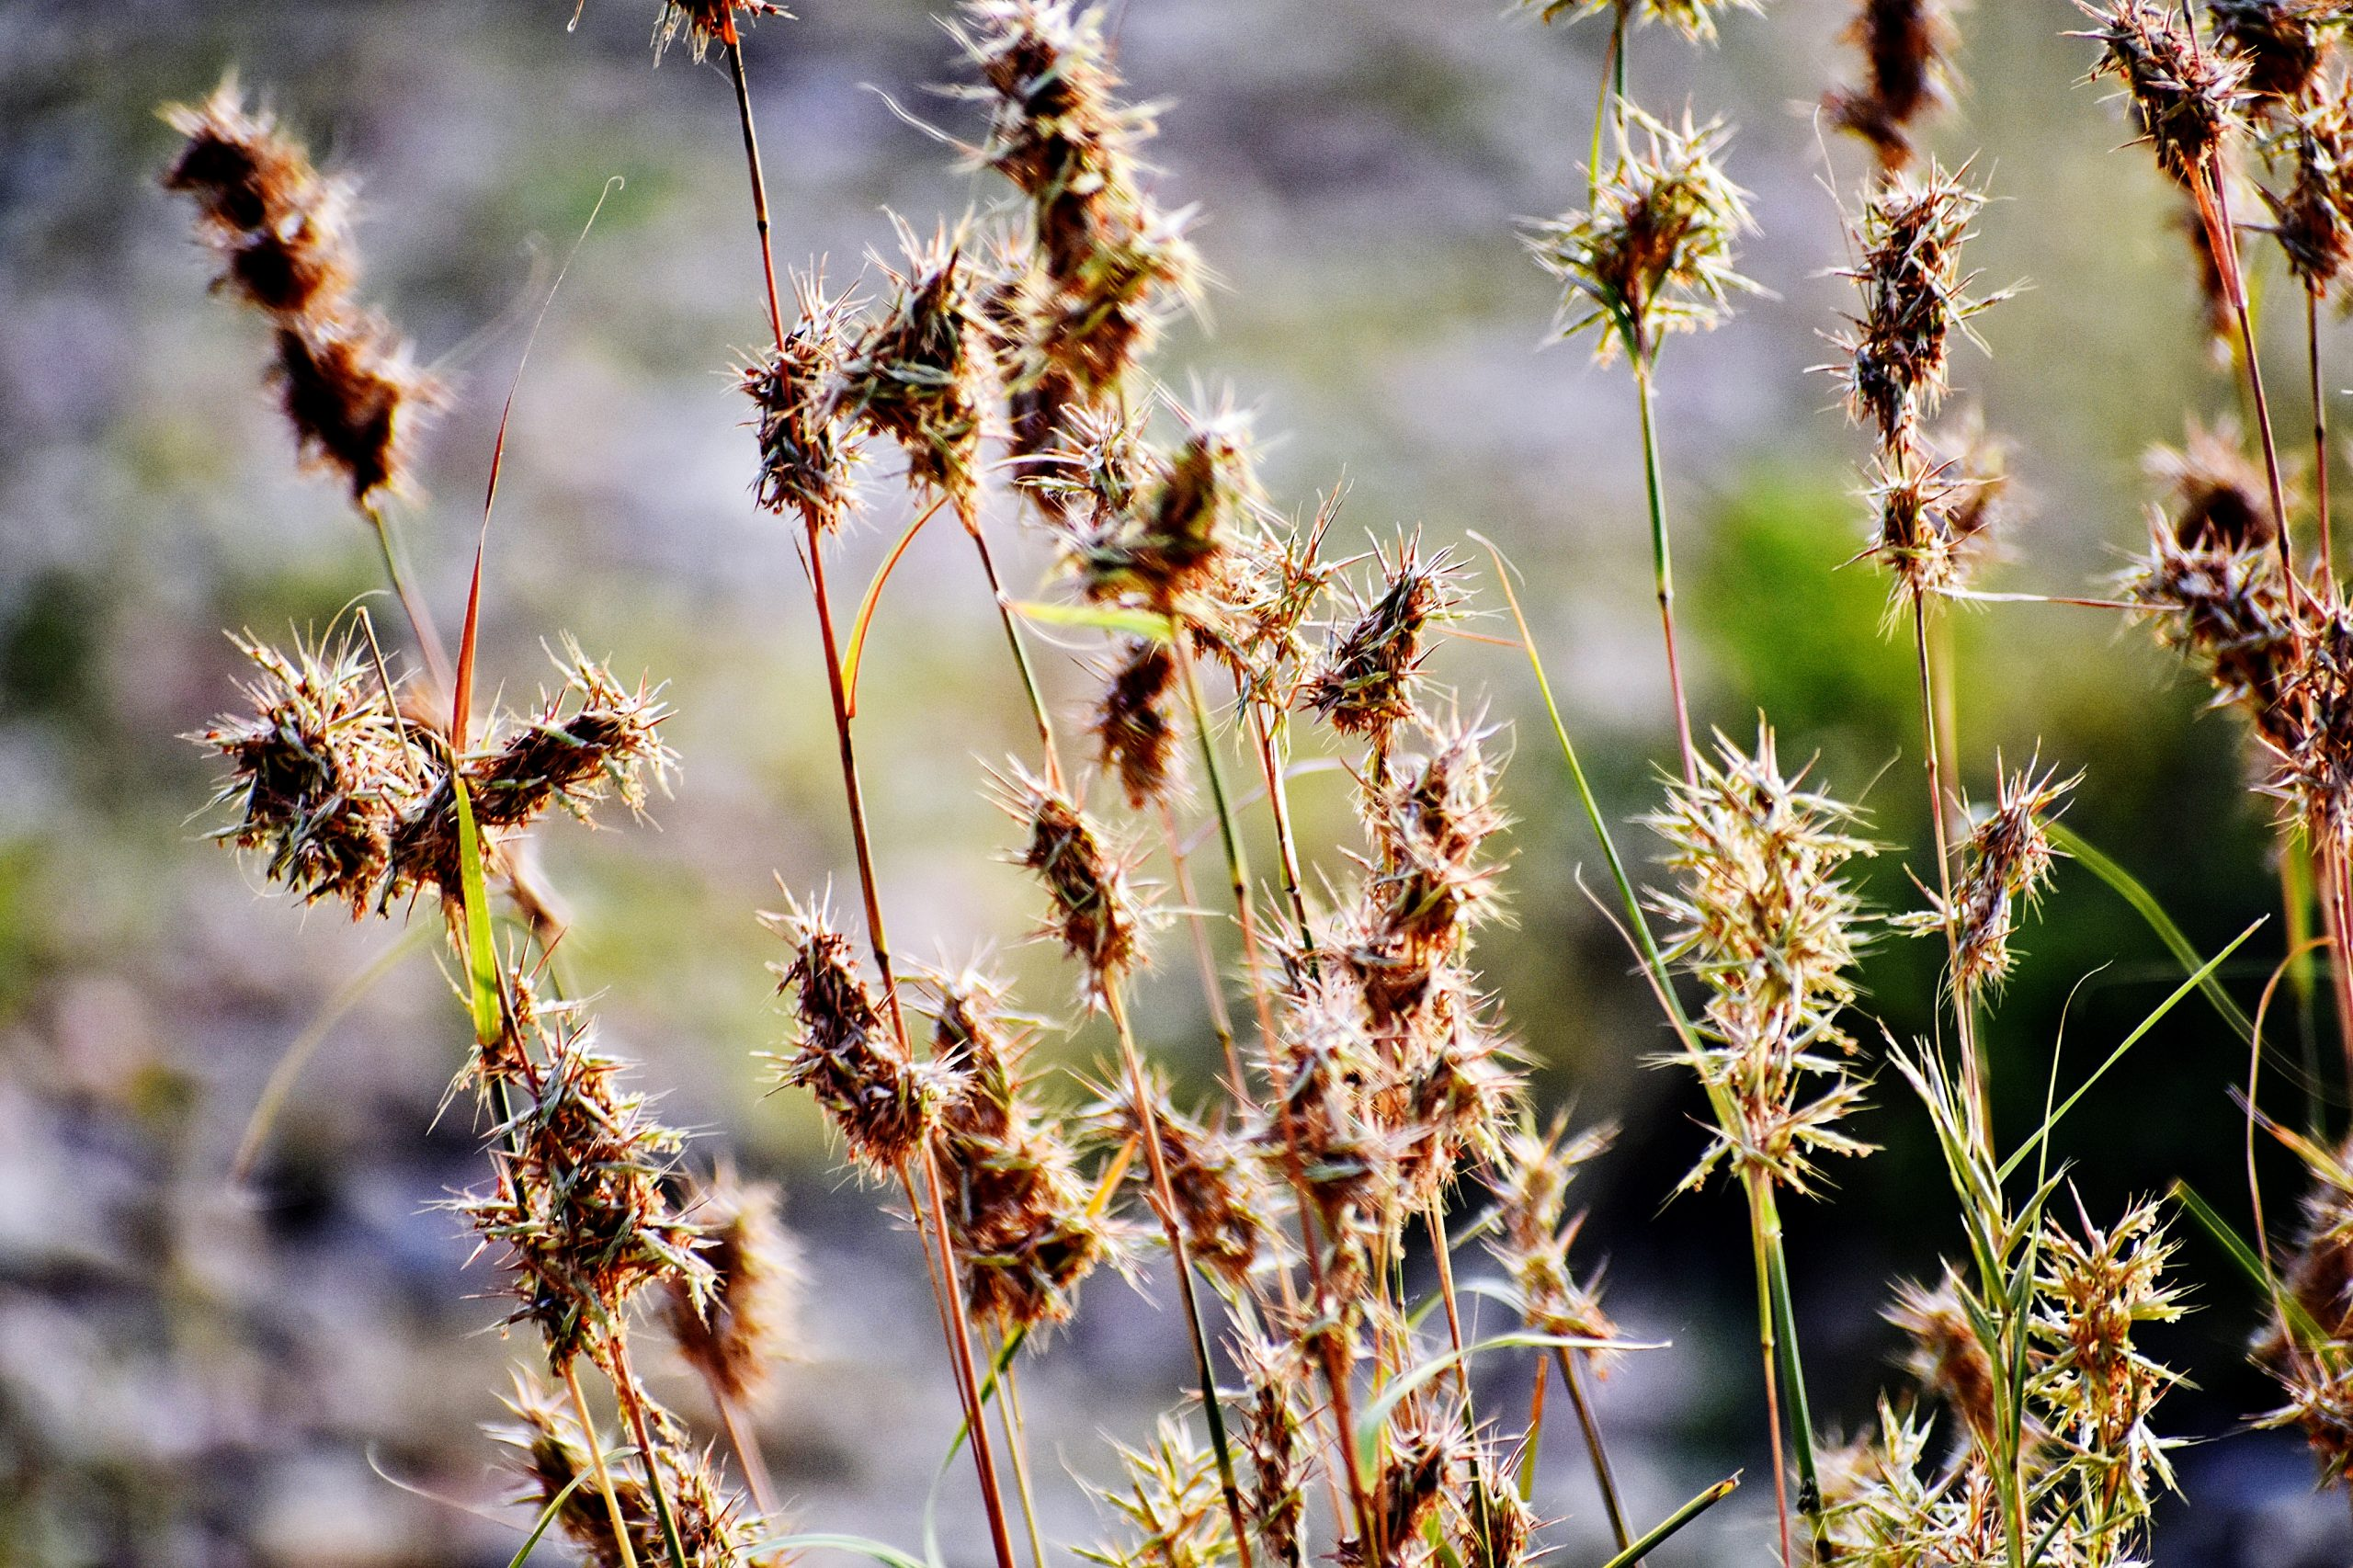 Wild plants in forest